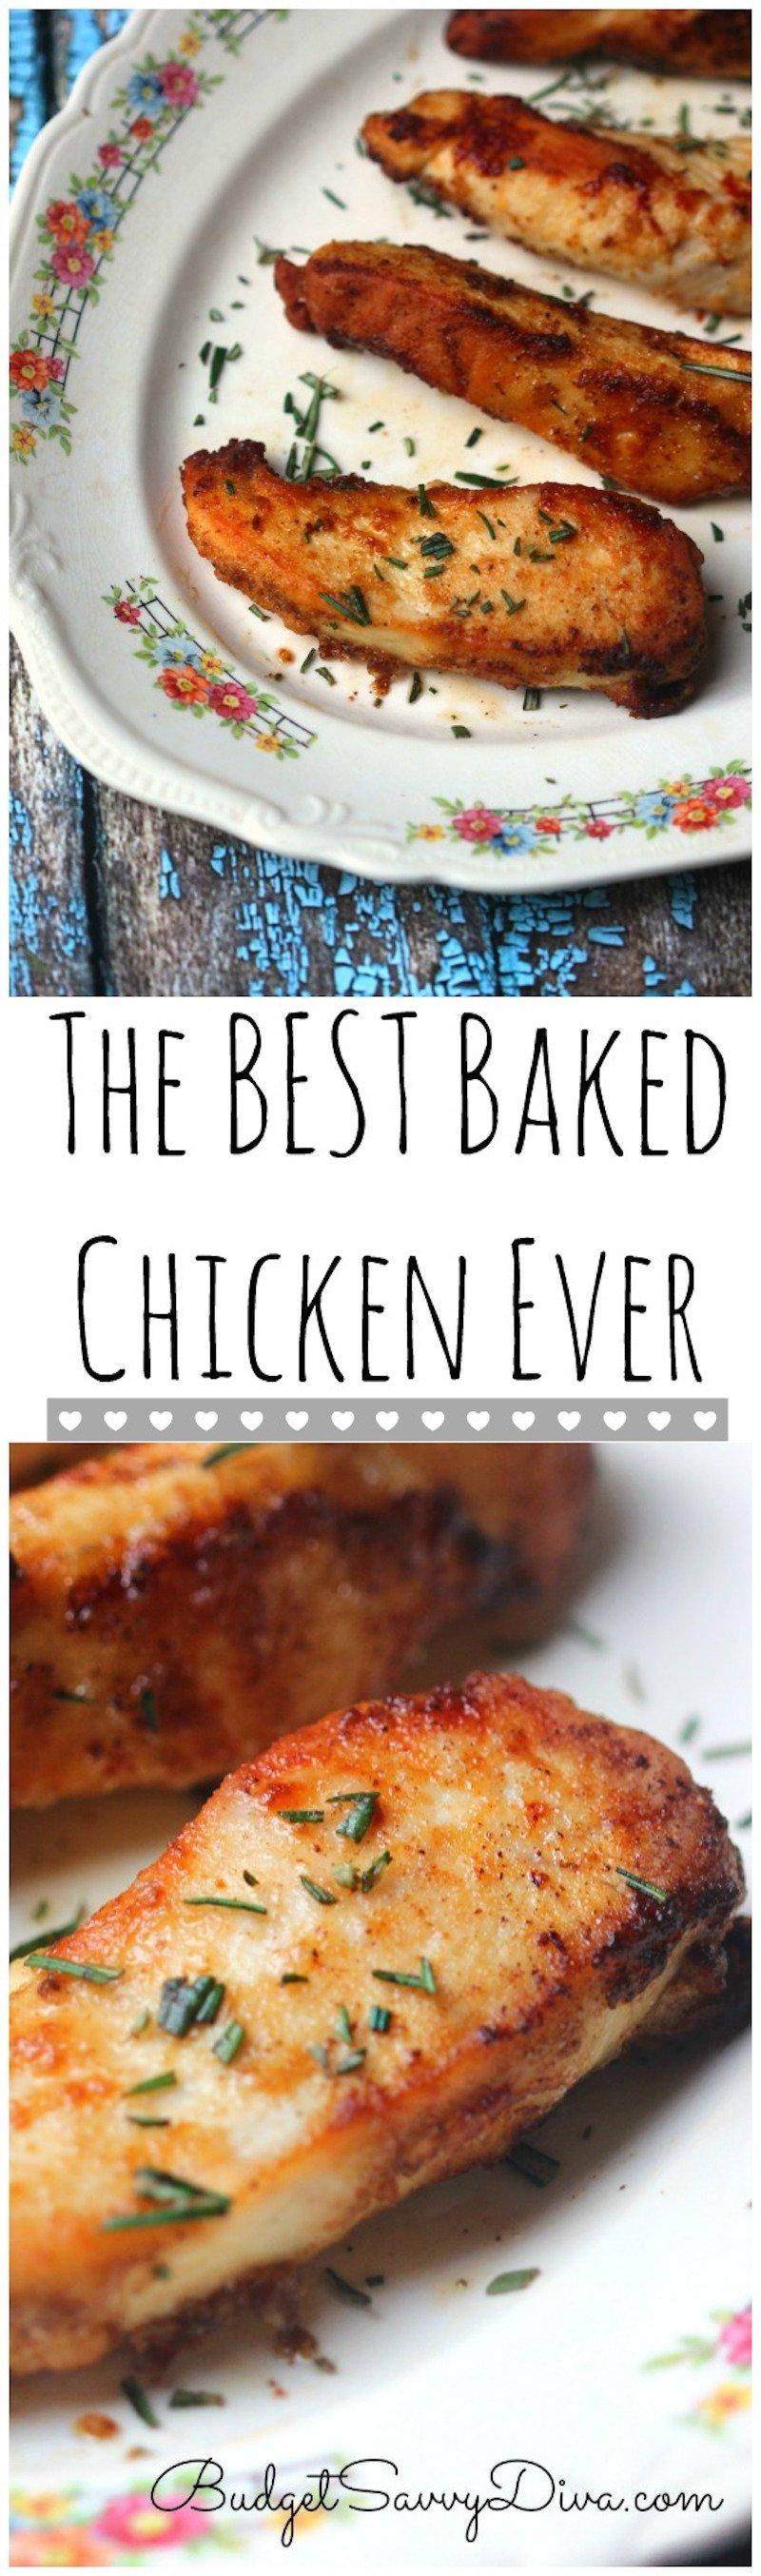 14 Easy Baked Chicken Recipes That Will Surprise All Of You